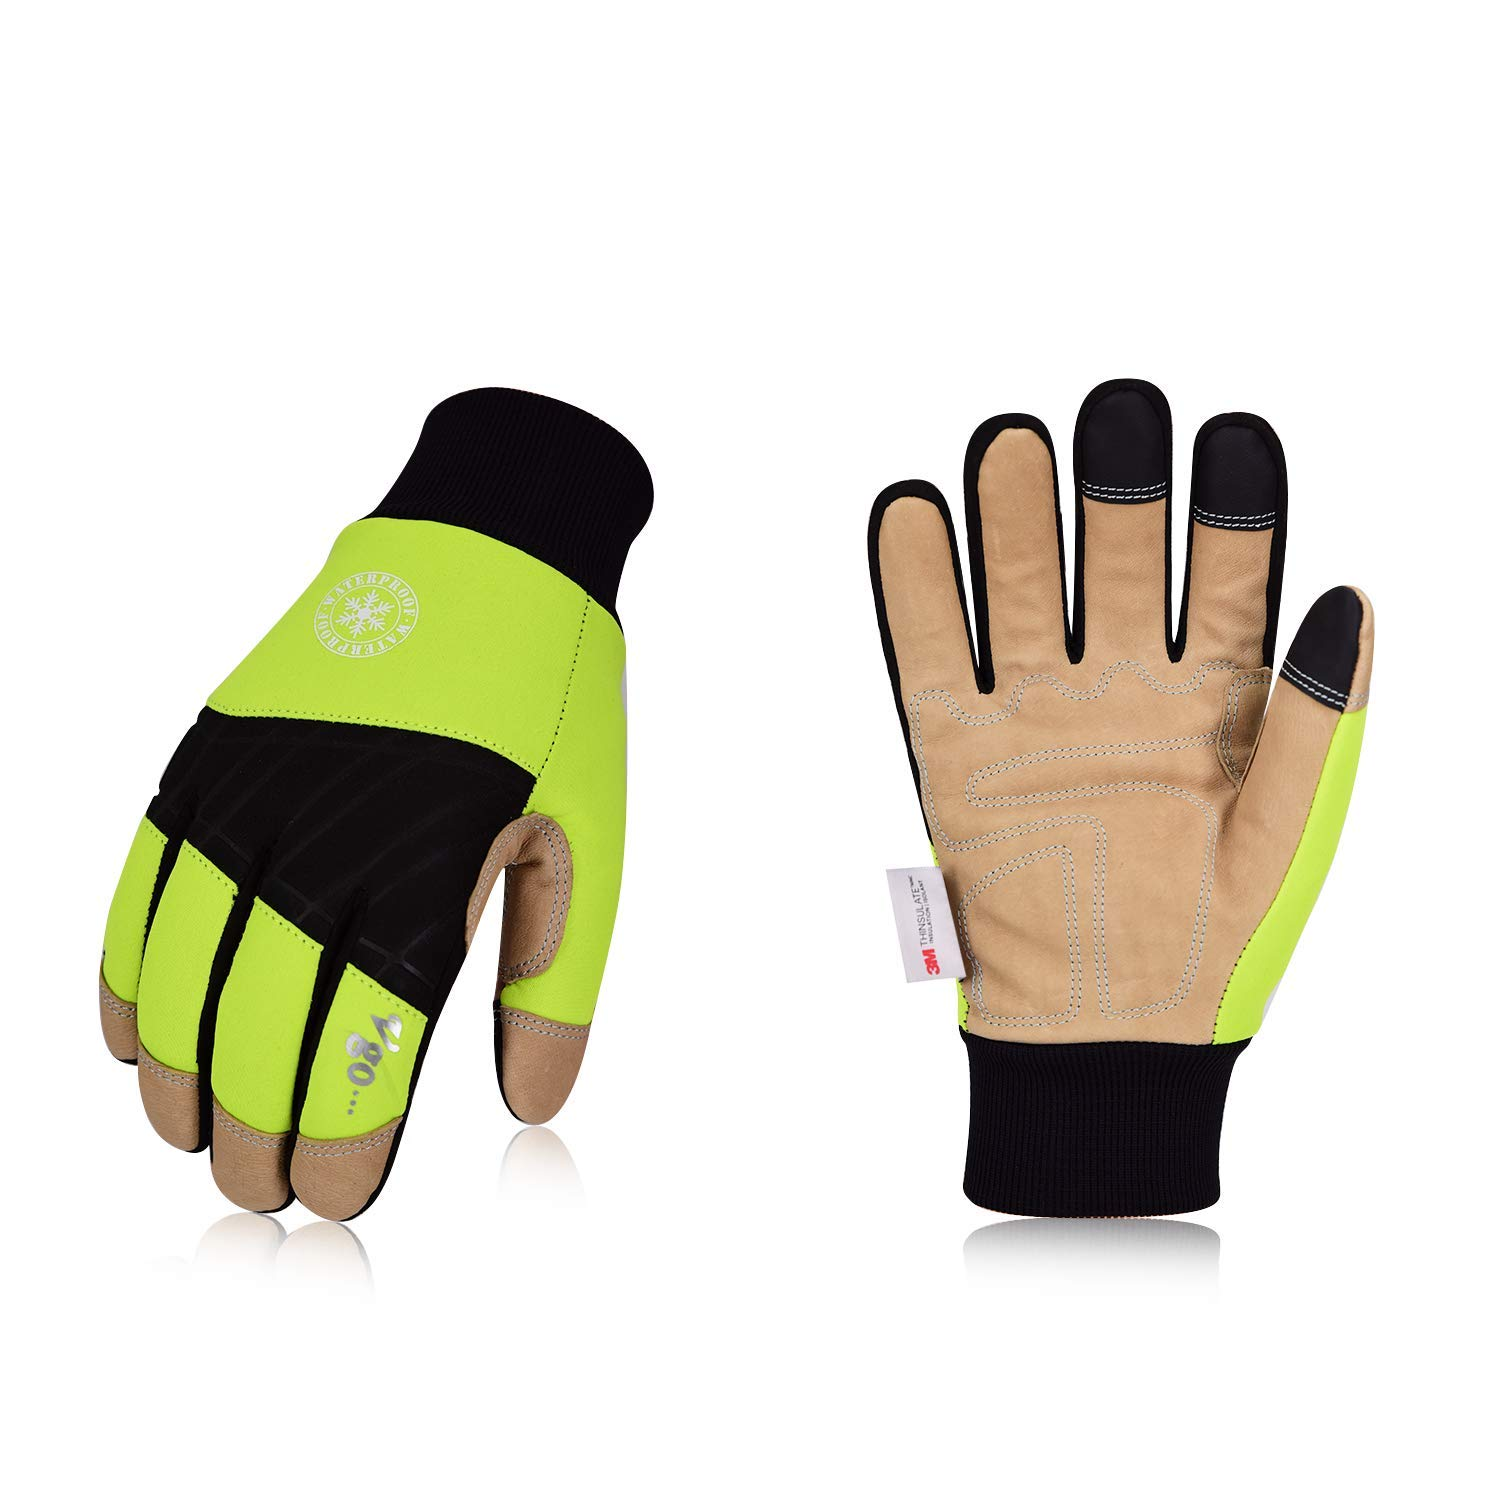 0d9969fcf 1Pair,Size L,Fluorescence Green,PA1015FW Lab, Safety & Work Gloves Vgo 32℉  or above 3M Thinsulate ...